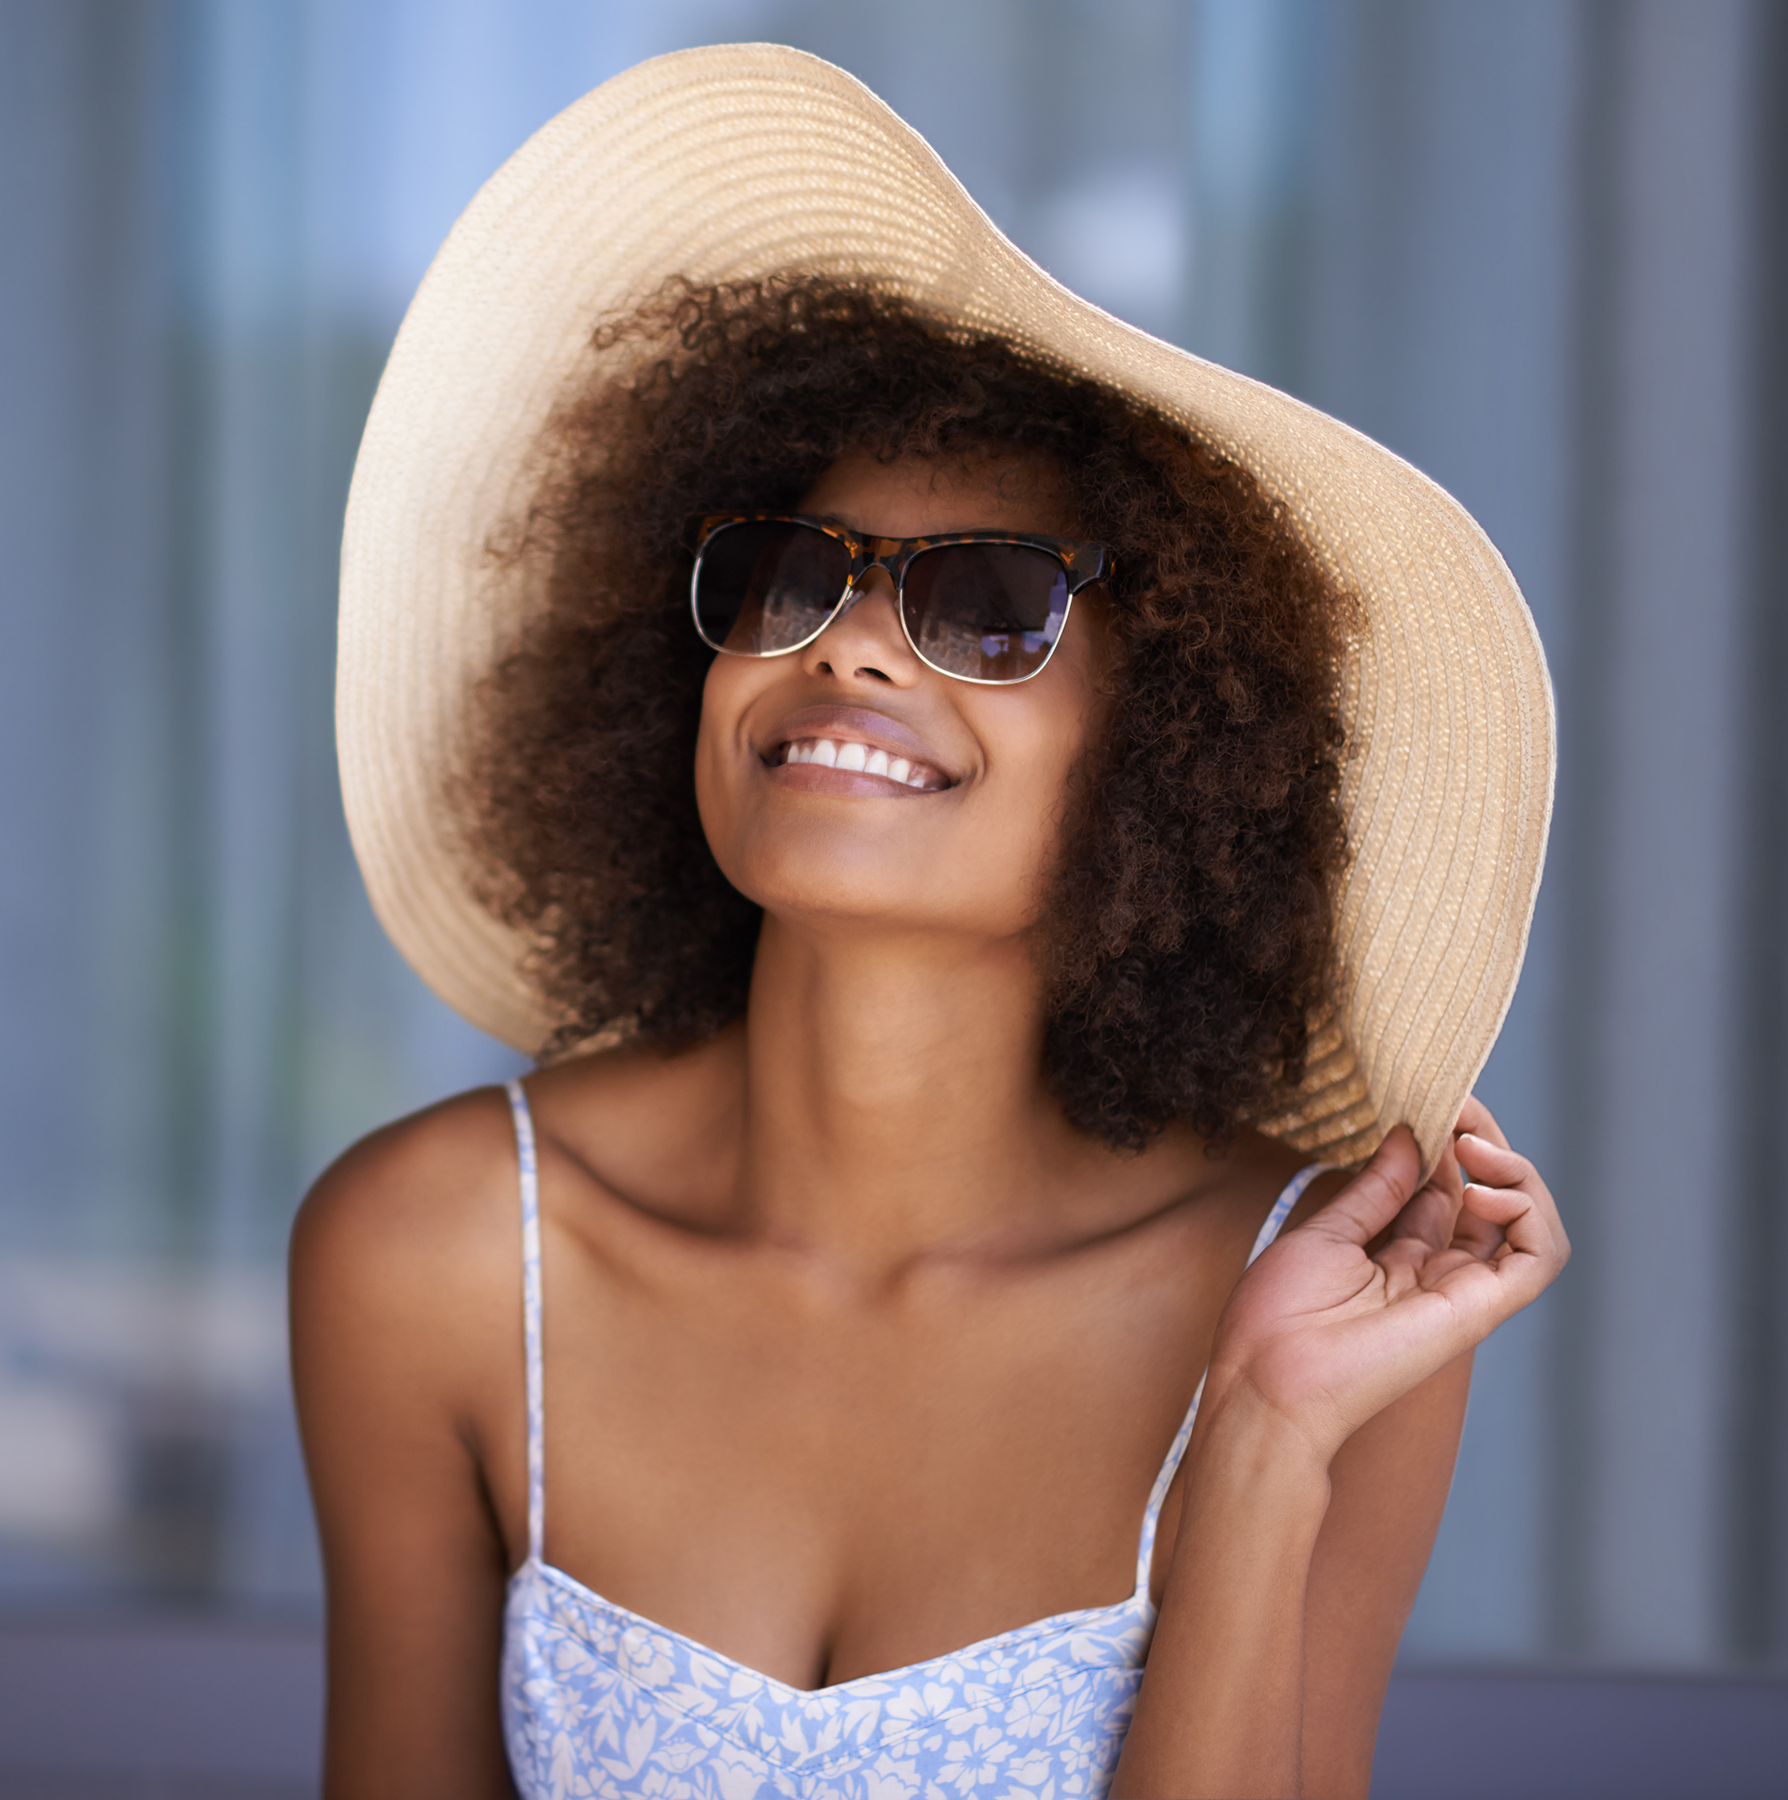 Woman wearing sun hat and sunglasses